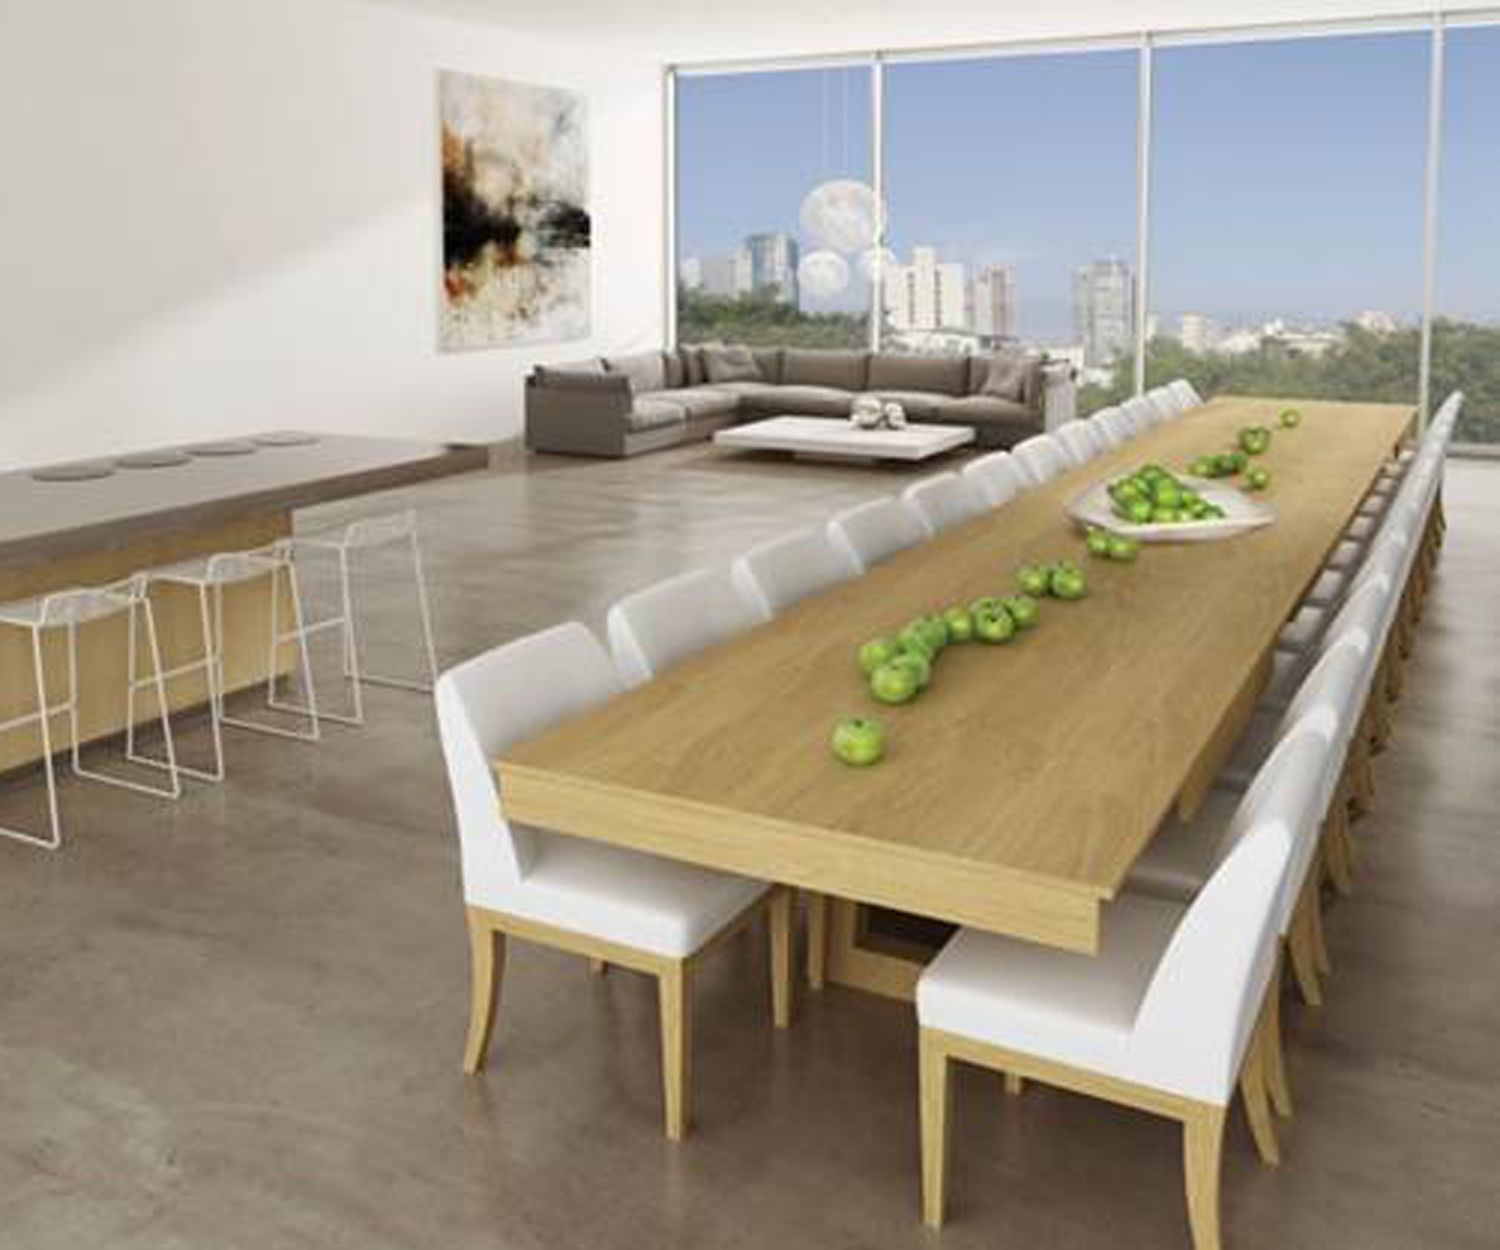 10 Seater Dining Table For Sale Philippines